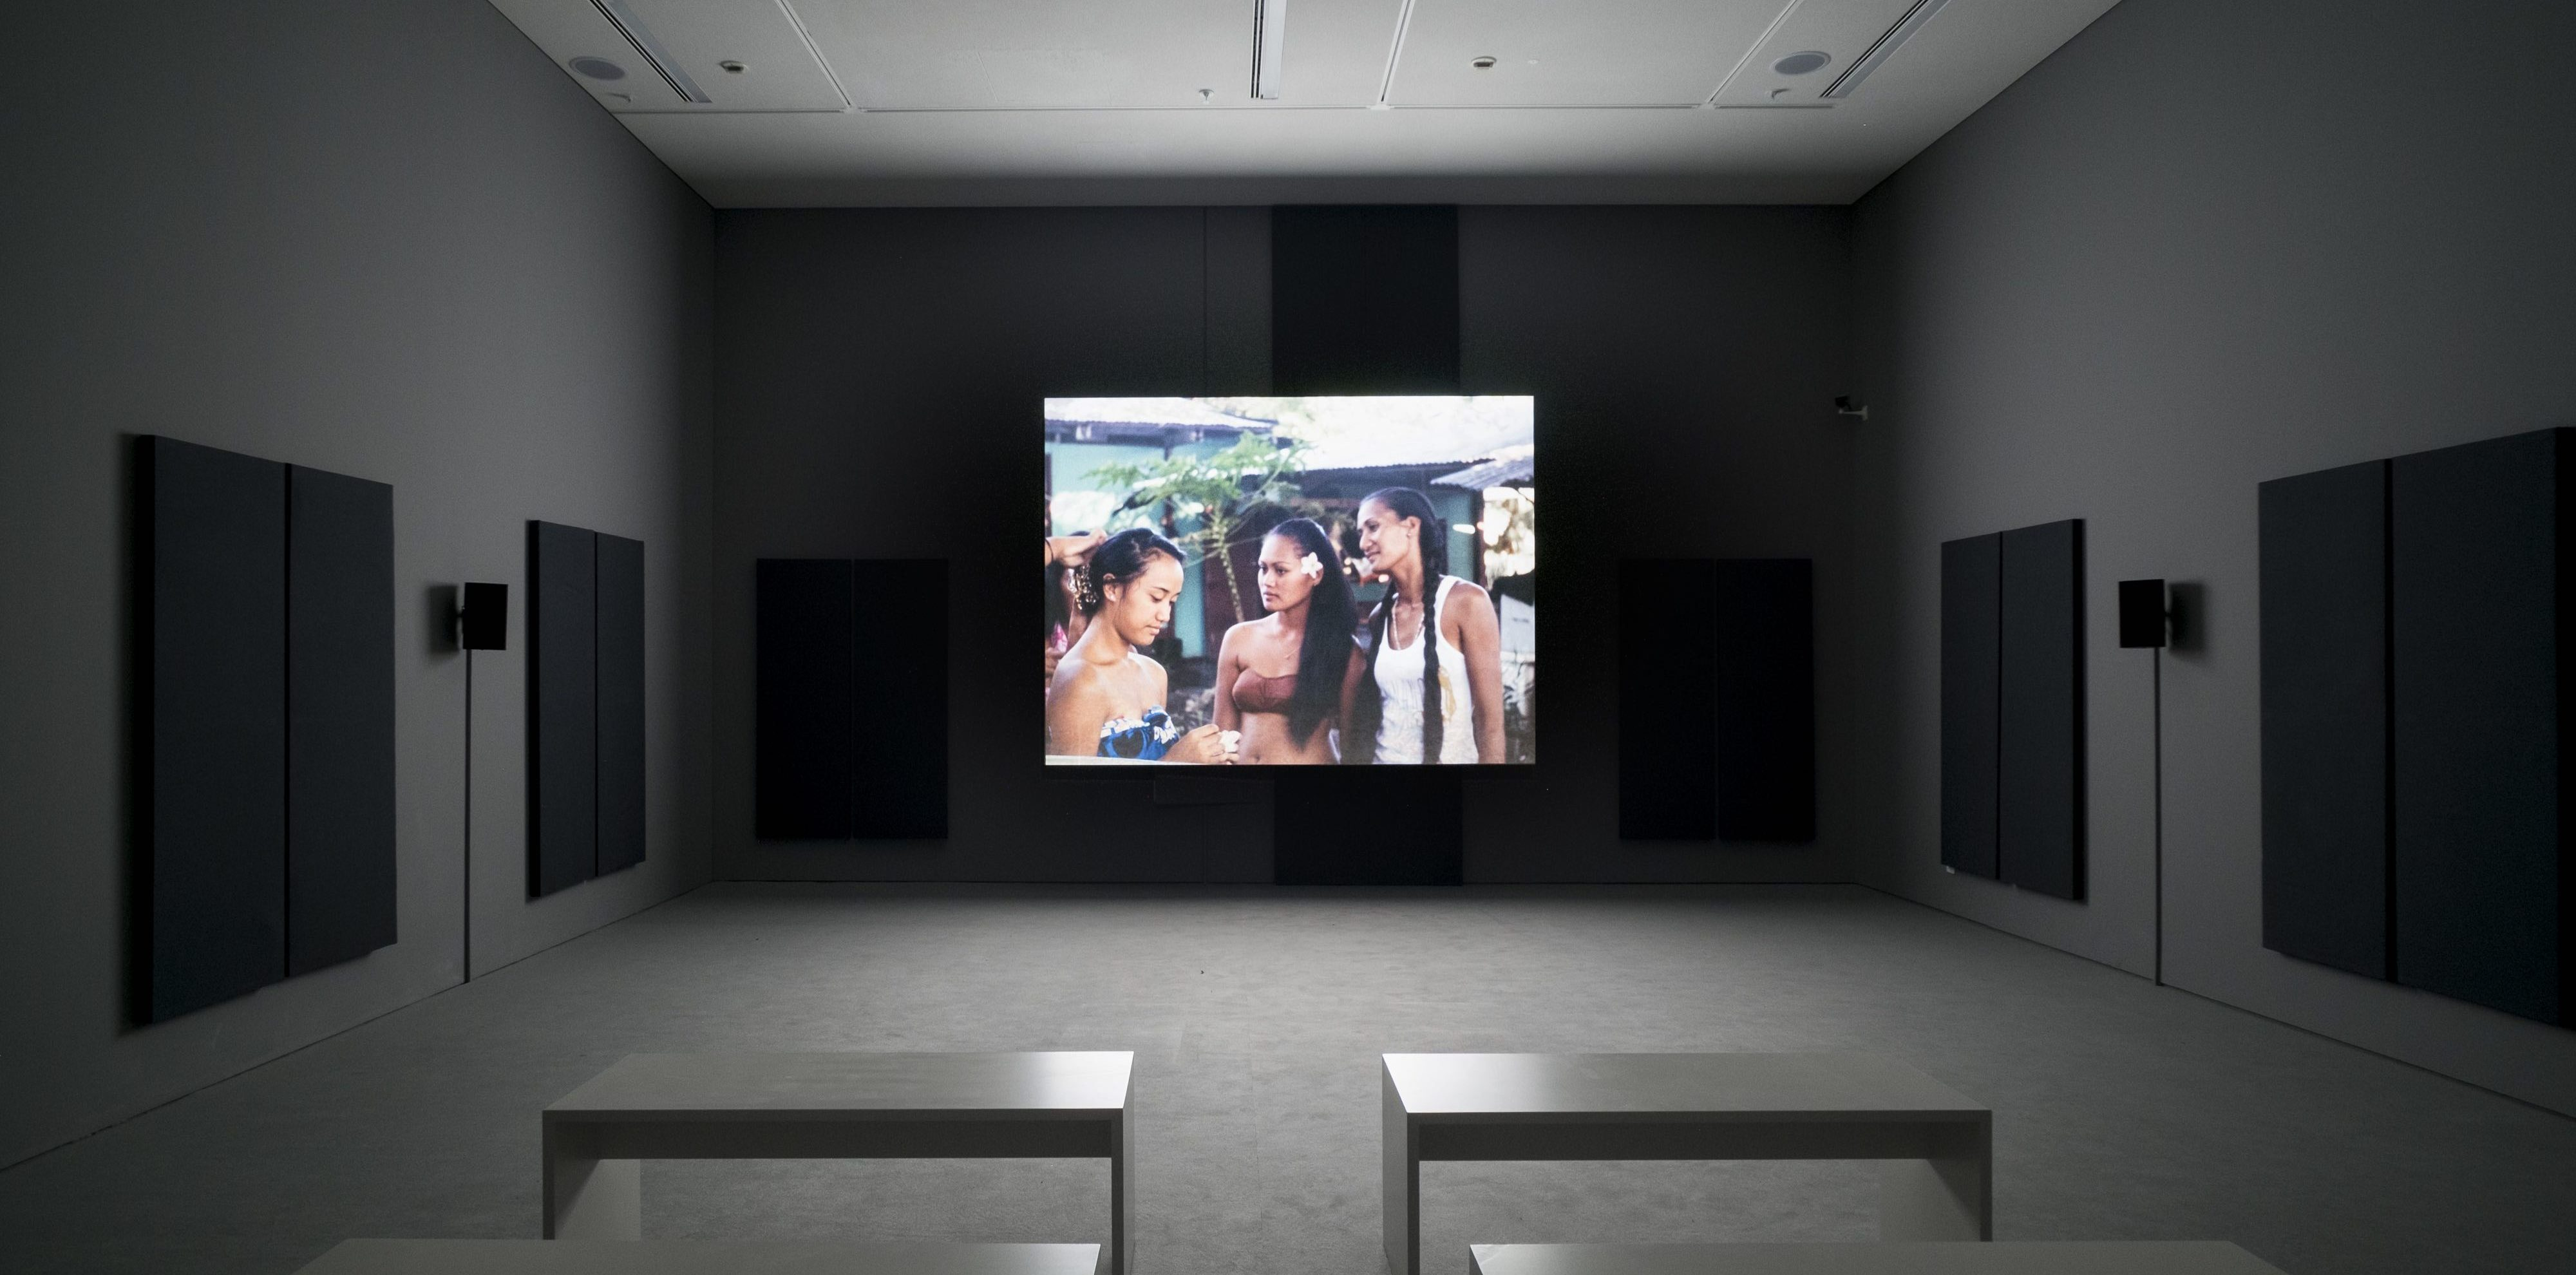 Nashashibi/Skaer, Why Are You Angry? 2017, digital video transferred from 16 mm film, installation view, EMST—National Museum of Contemporary Art, Athens, documenta 14, photo: Mathias V­ölzke